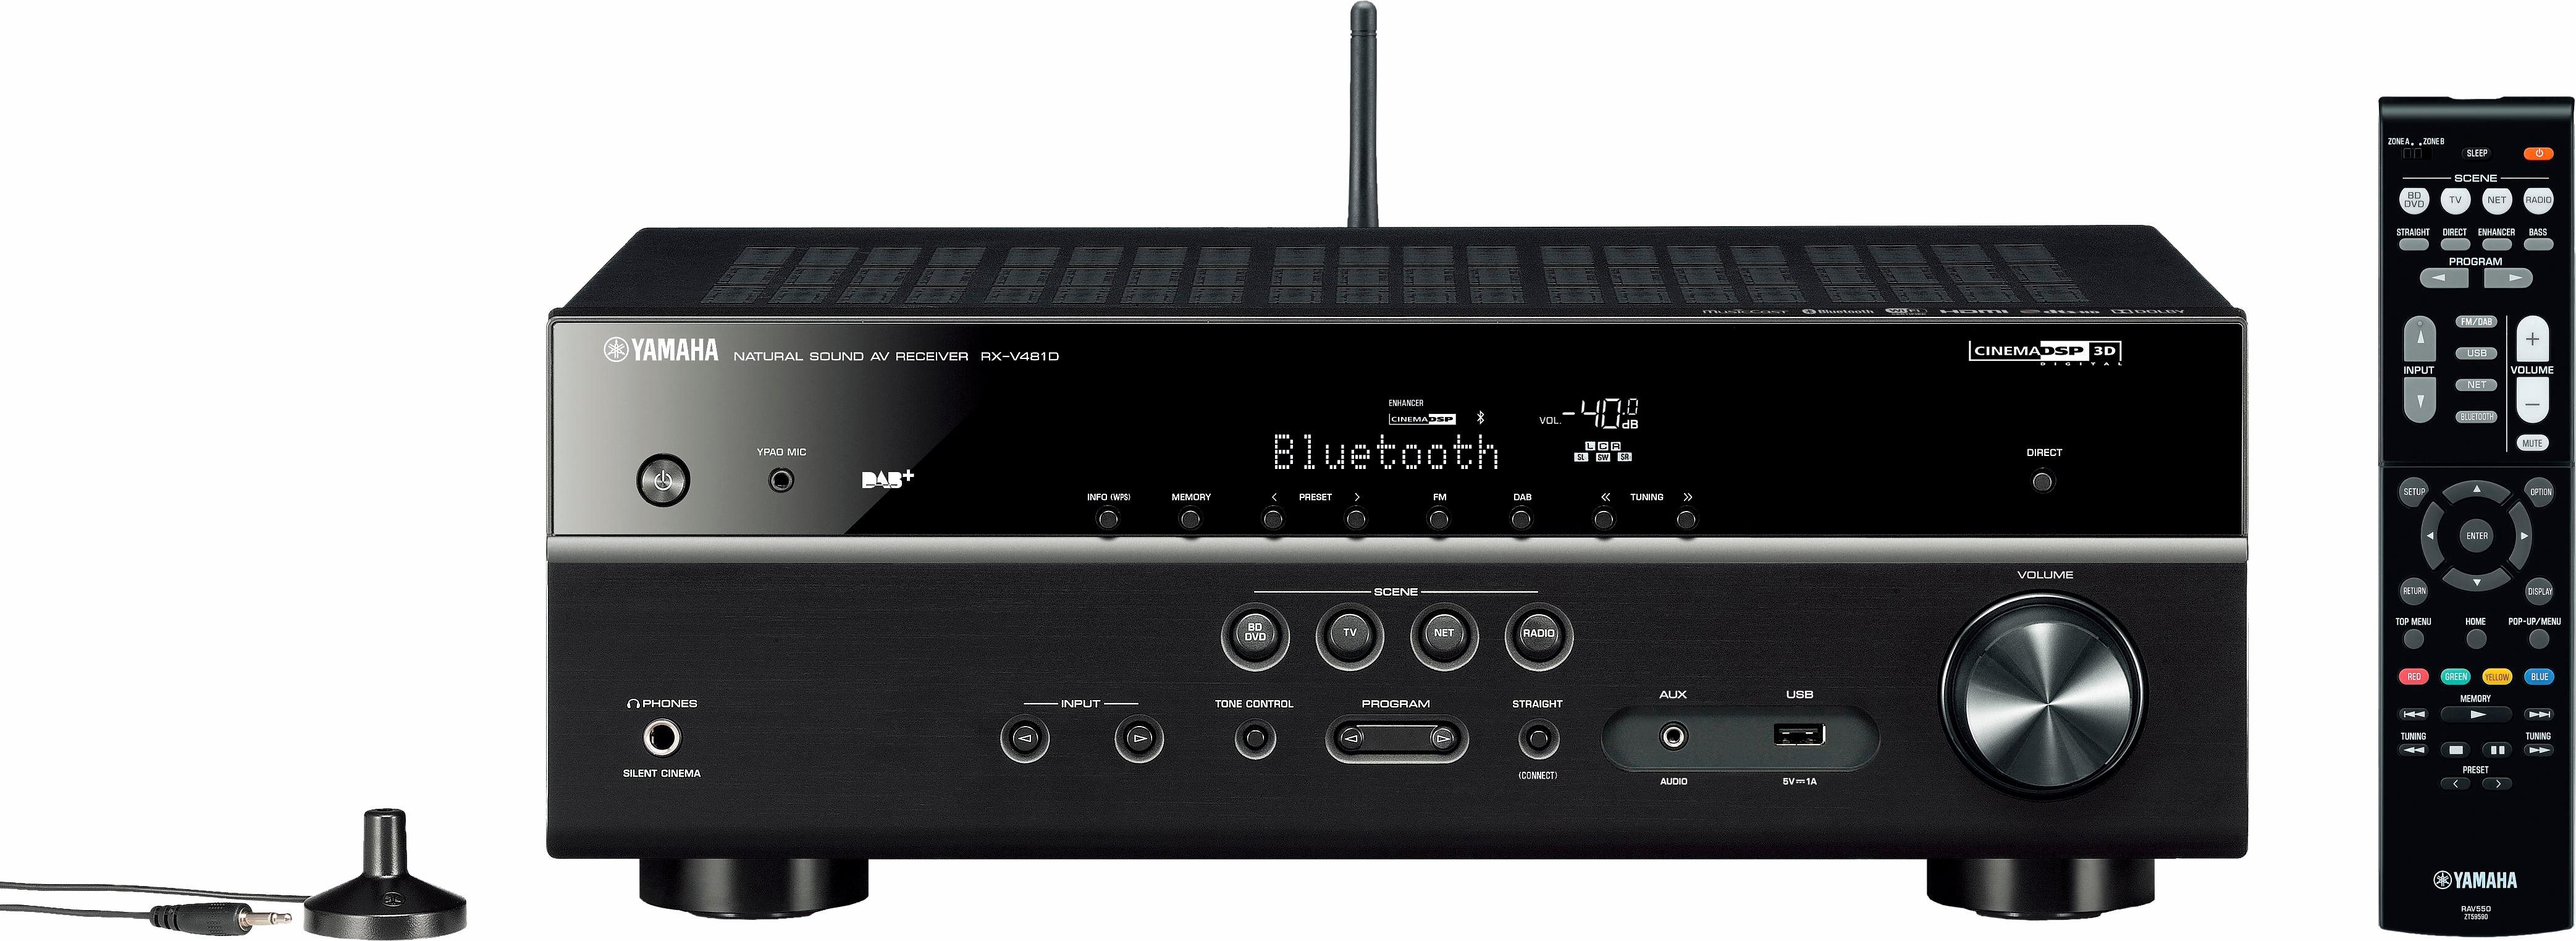 RX-V481 DAB 5.1 AV-Receiver (Hi-Res, Spotify Connect, Airplay, WLAN, Bluetooth)